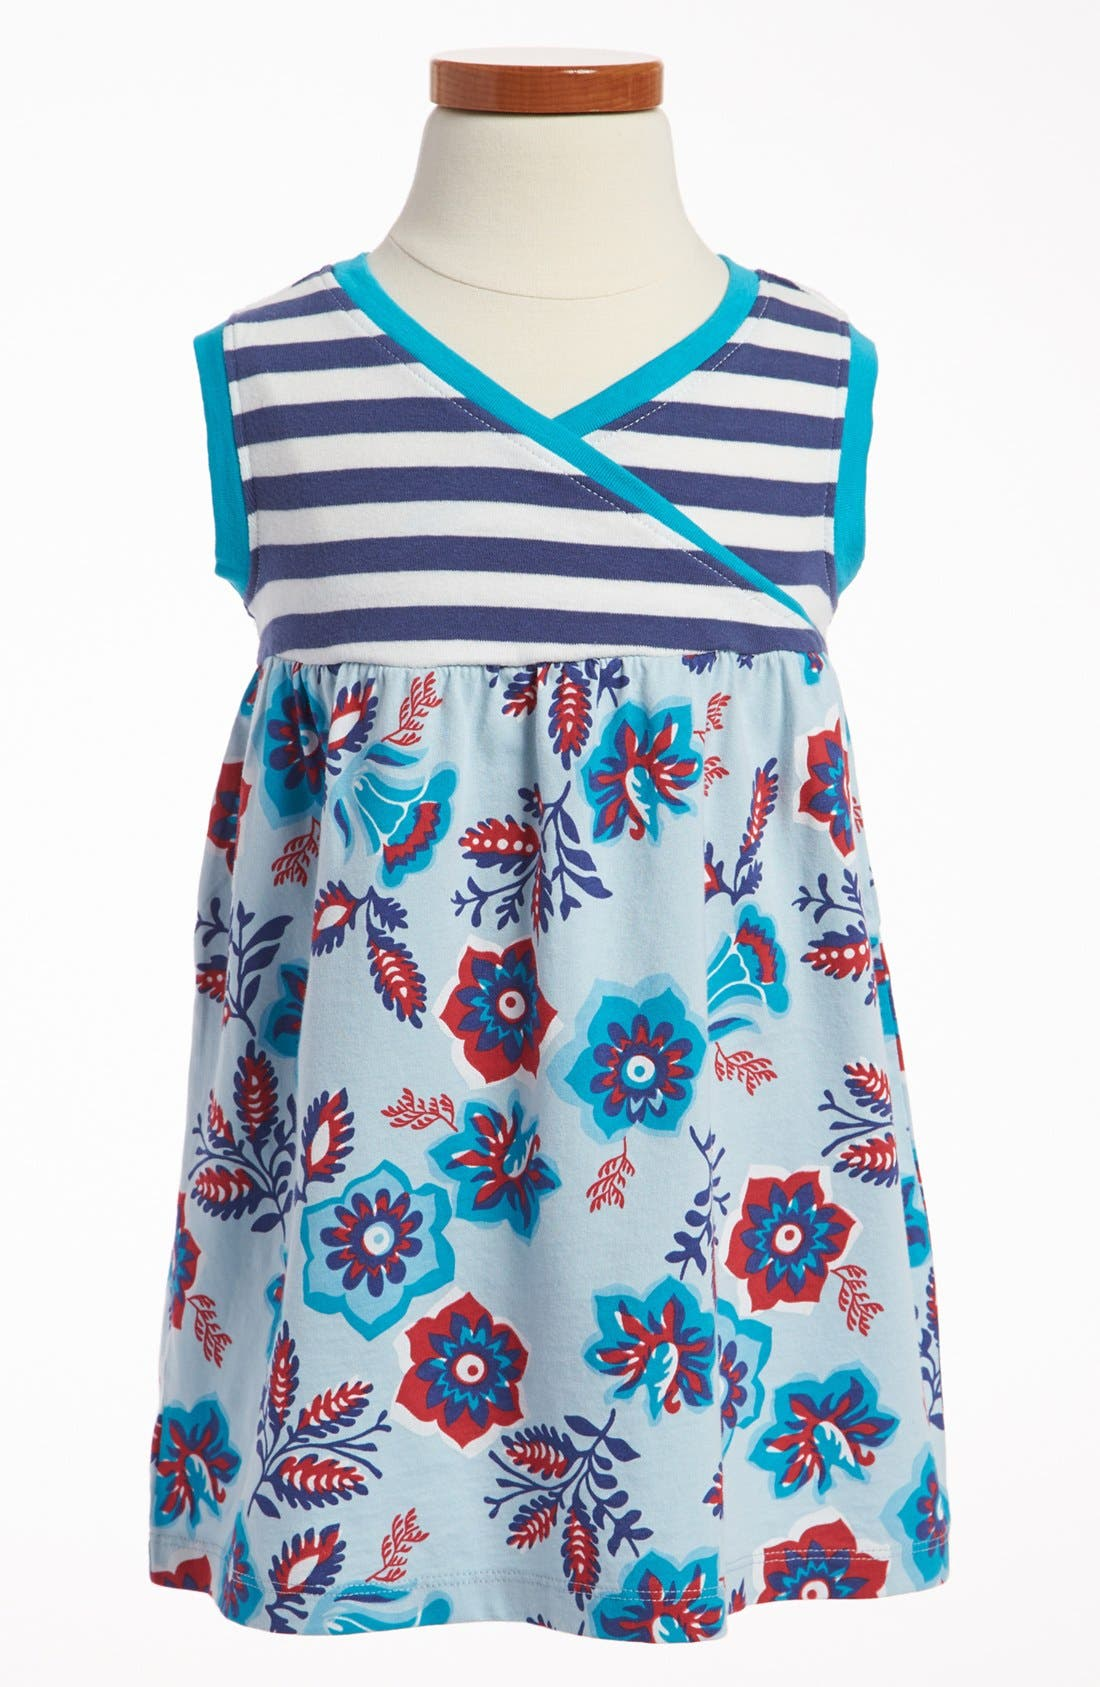 Alternate Image 1 Selected - Tea Collection 'Sea Gypsy' Dress (Toddler)